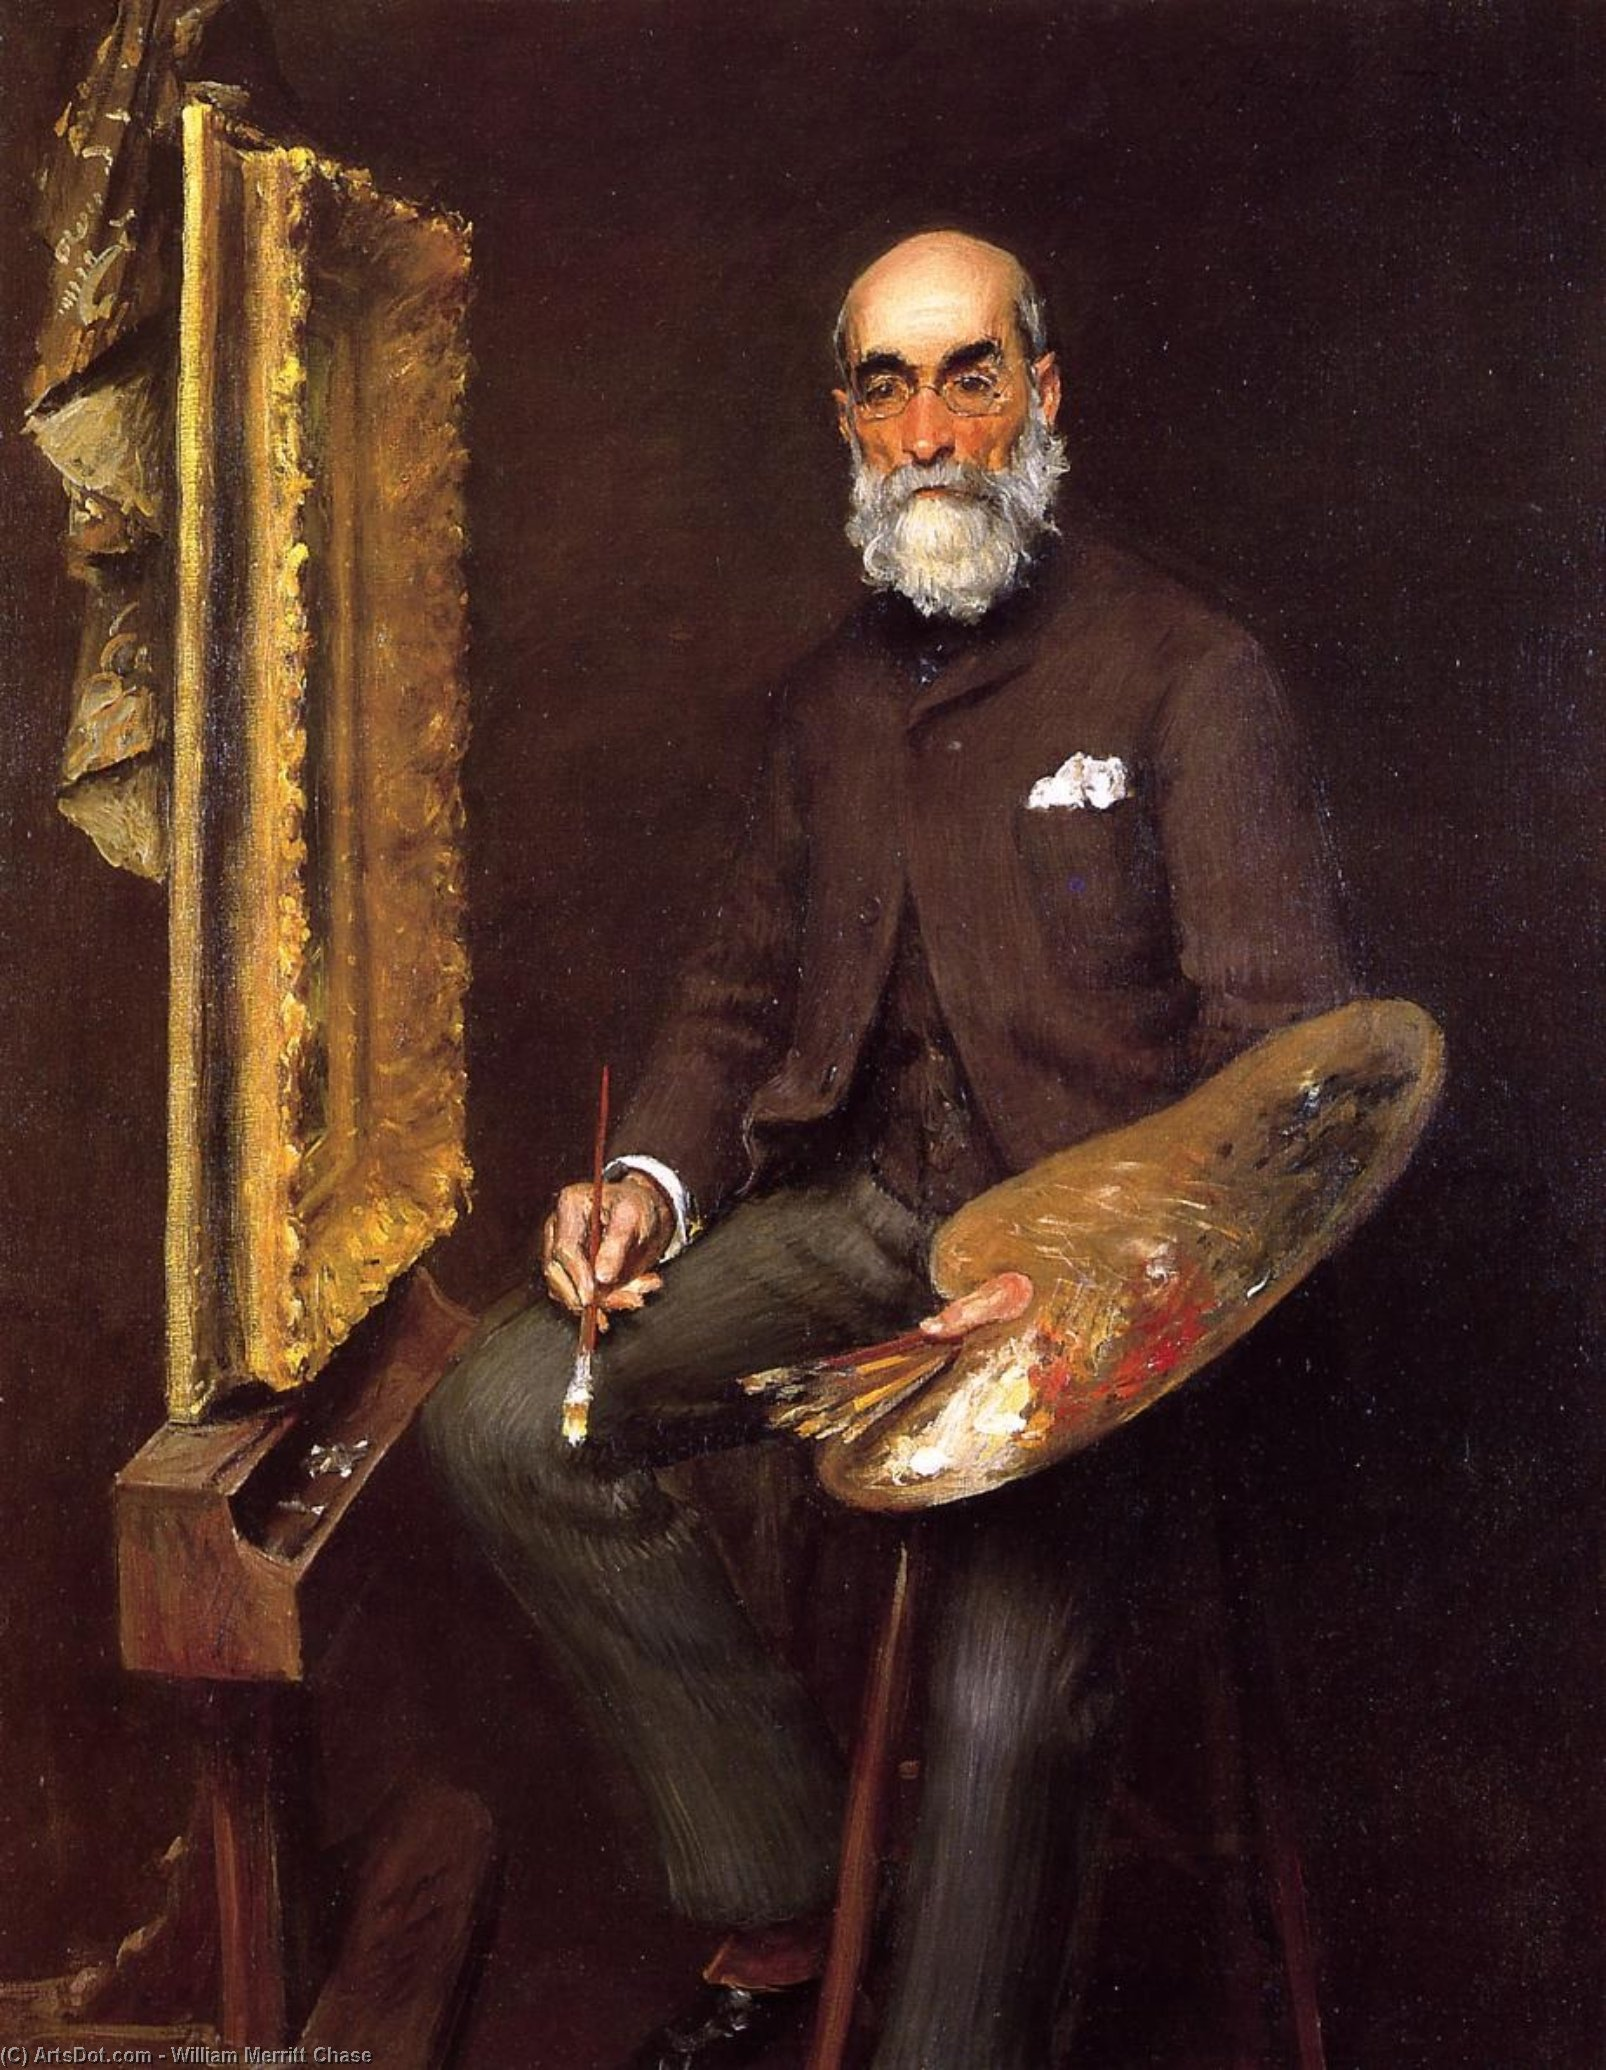 Portrait of Worthington Whittredge, Oil On Canvas by William Merritt Chase (1849-1916, United States)